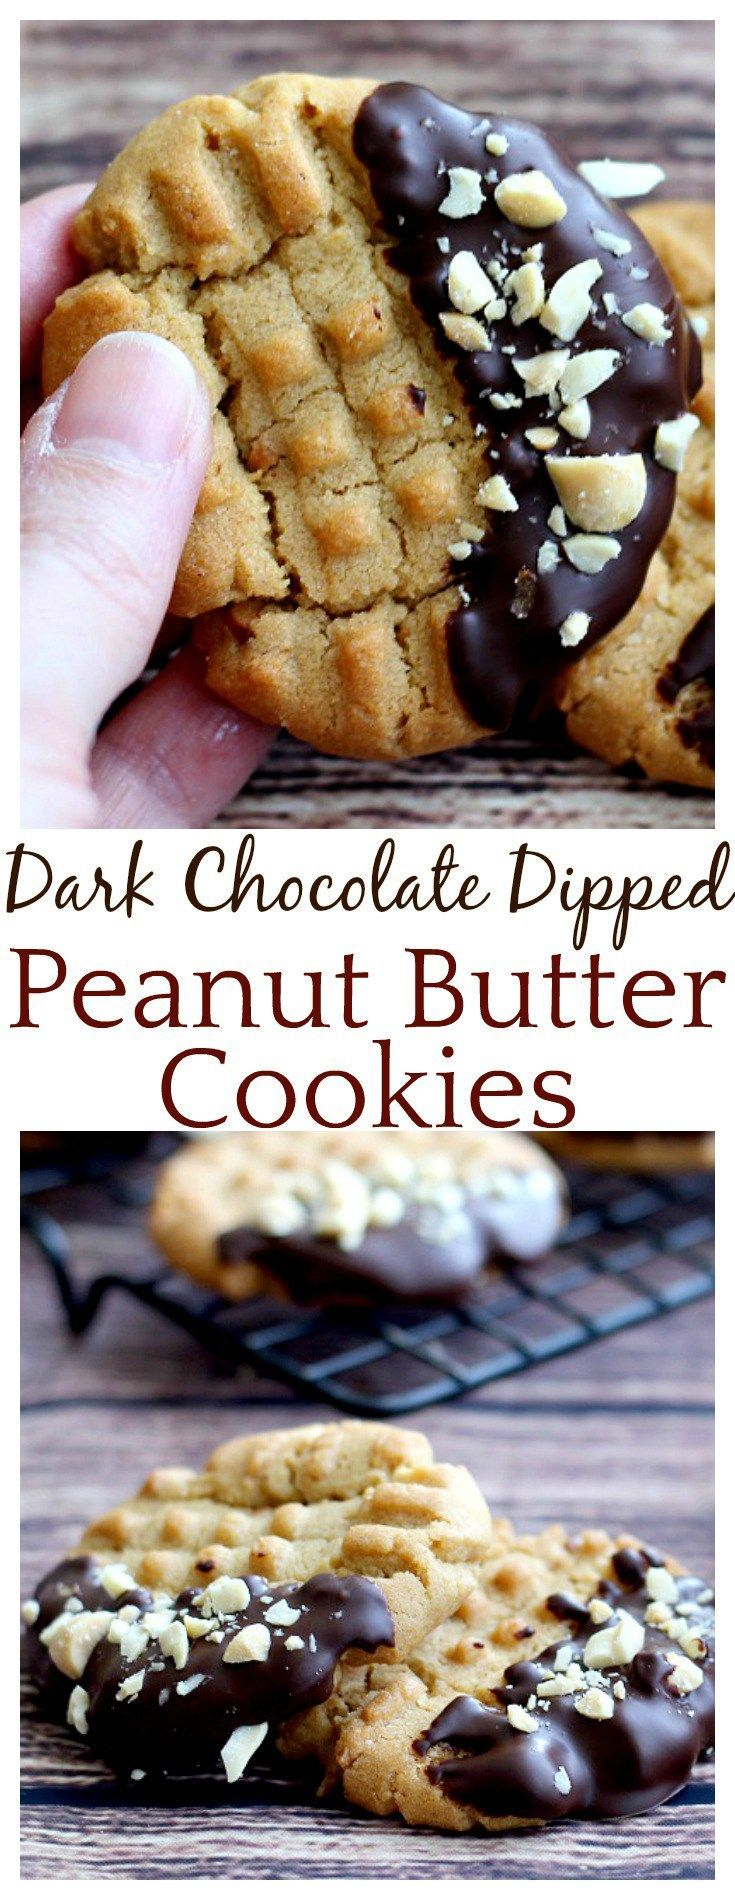 The dark chocolate on these Dark Chocolate Dipped Peanut Butter cookies takes a classic peanut butter cookie recipe up a notch! The cookies are crunch and delicious and the dark chocolate is super indulgent! Such an easy recipe!